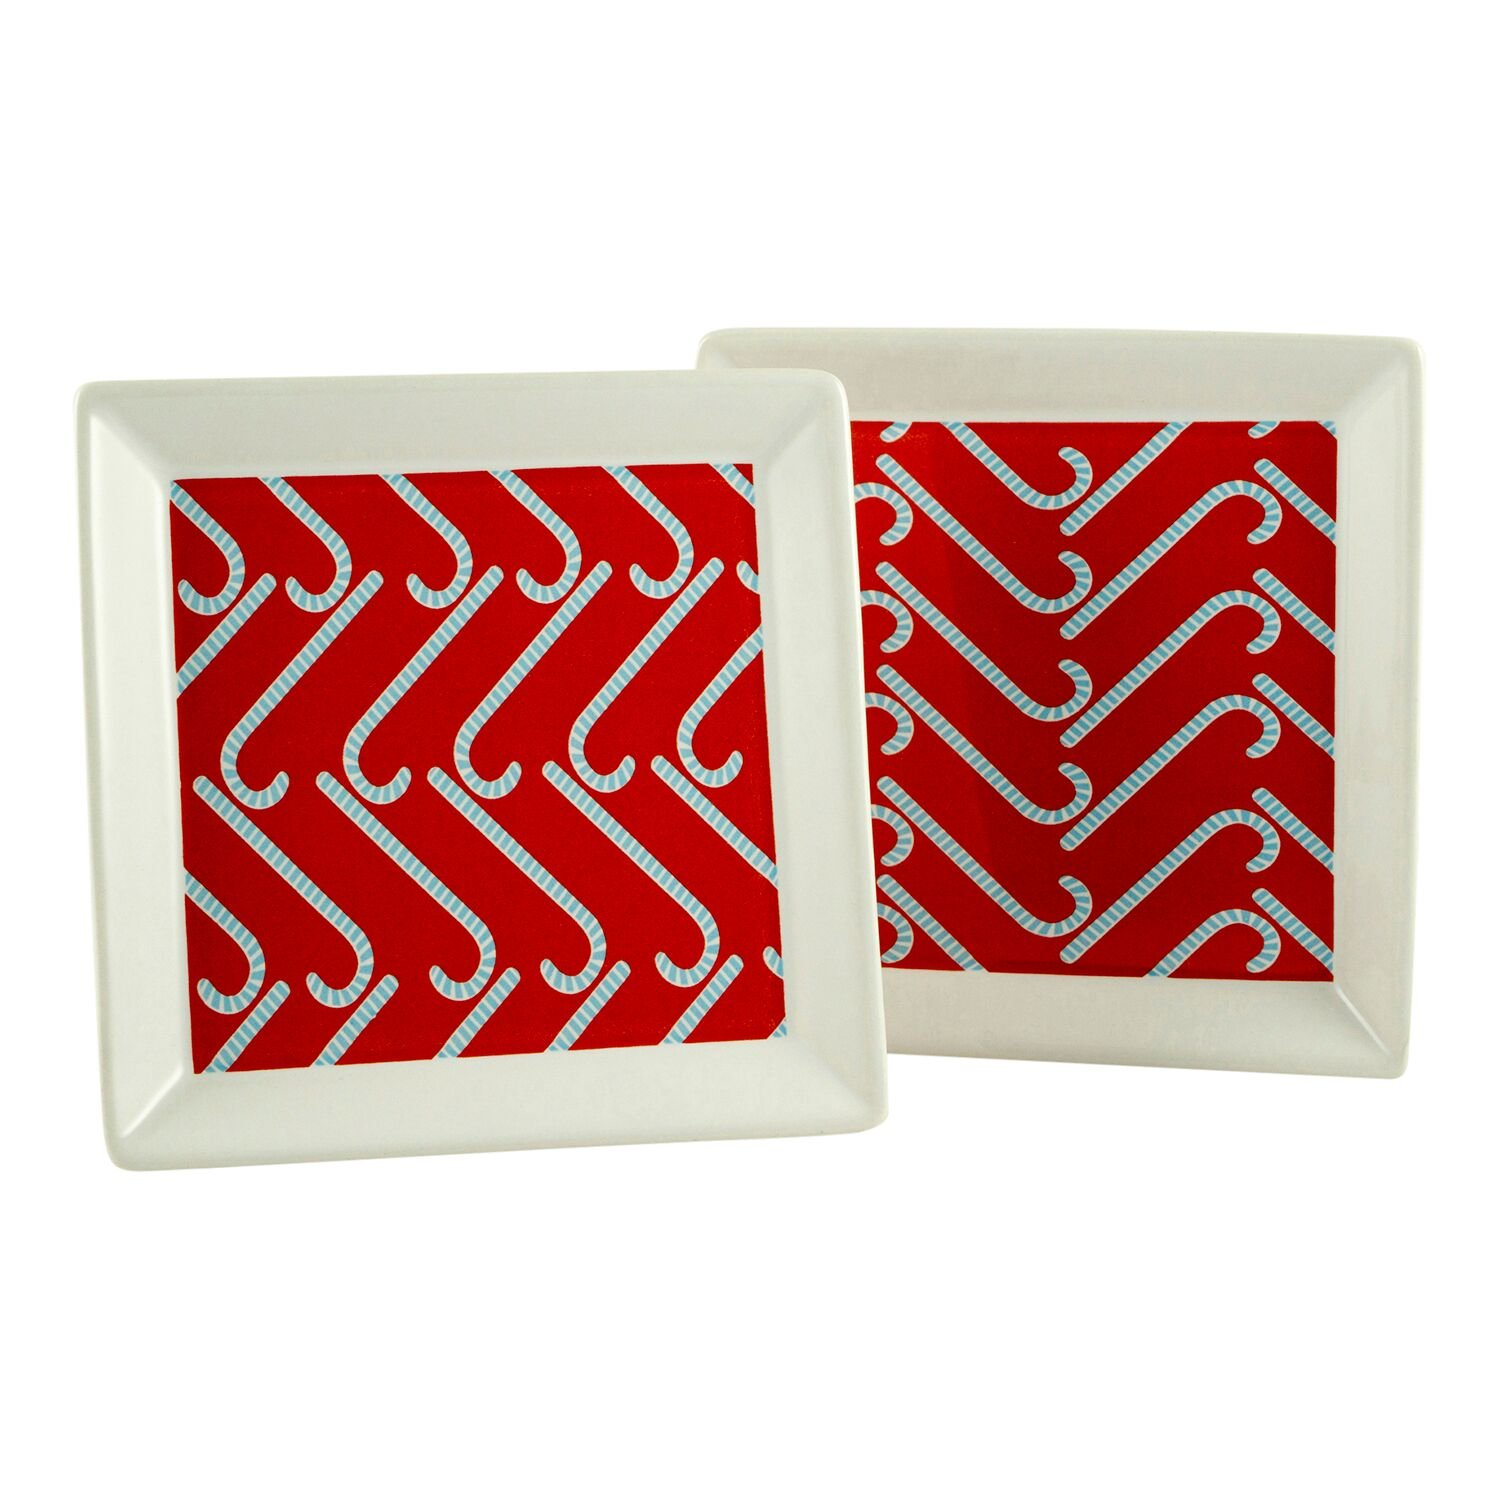 Candy Cane Appetizer Plates